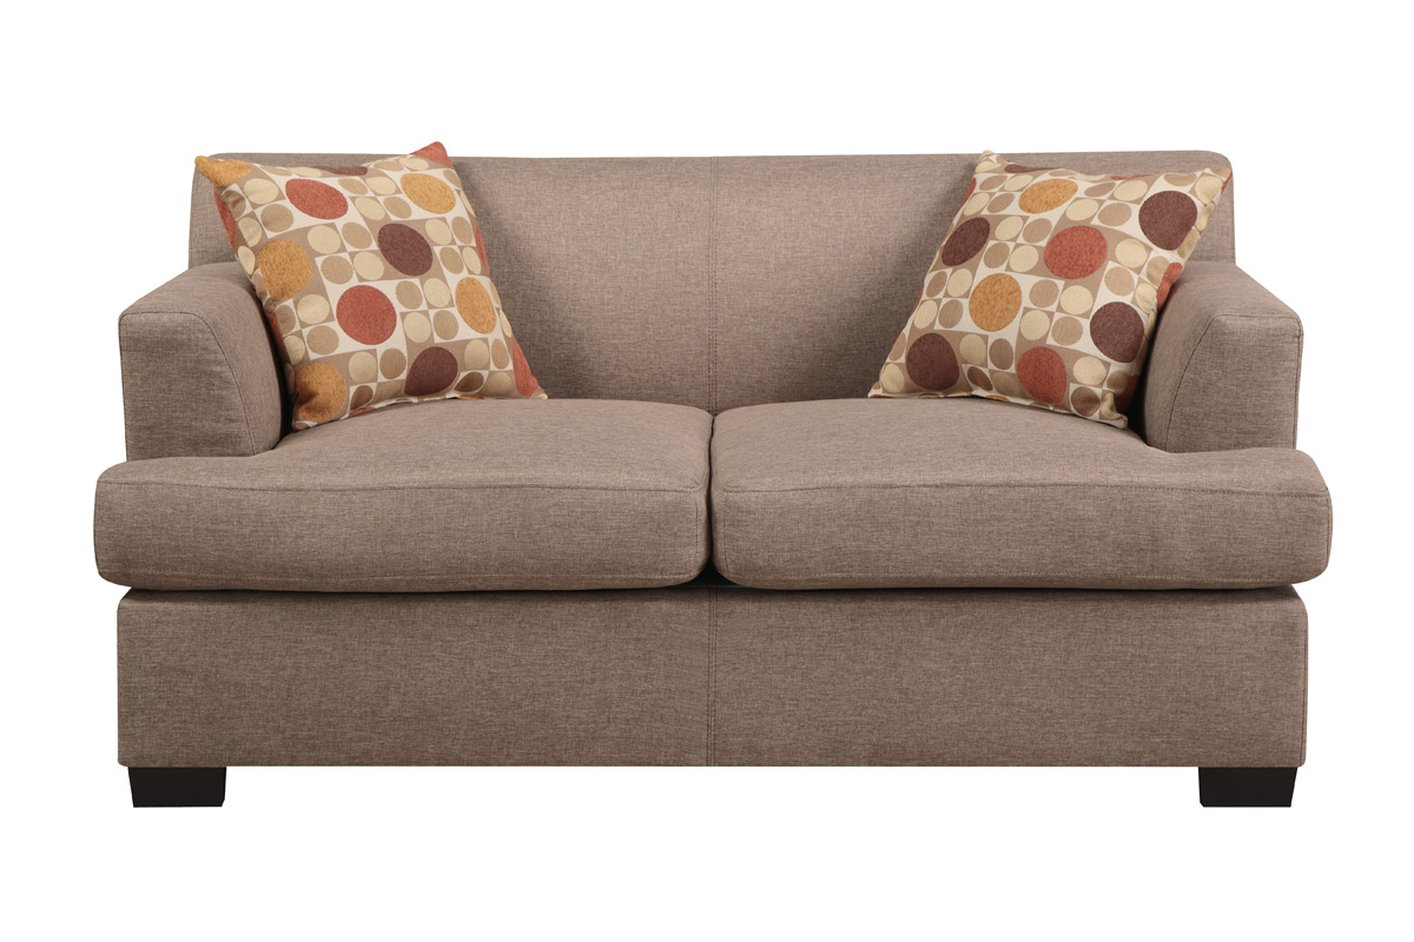 Poundex montreal v f7967 beige fabric loveseat steal a sofa furniture outlet los angeles ca Couches and loveseats